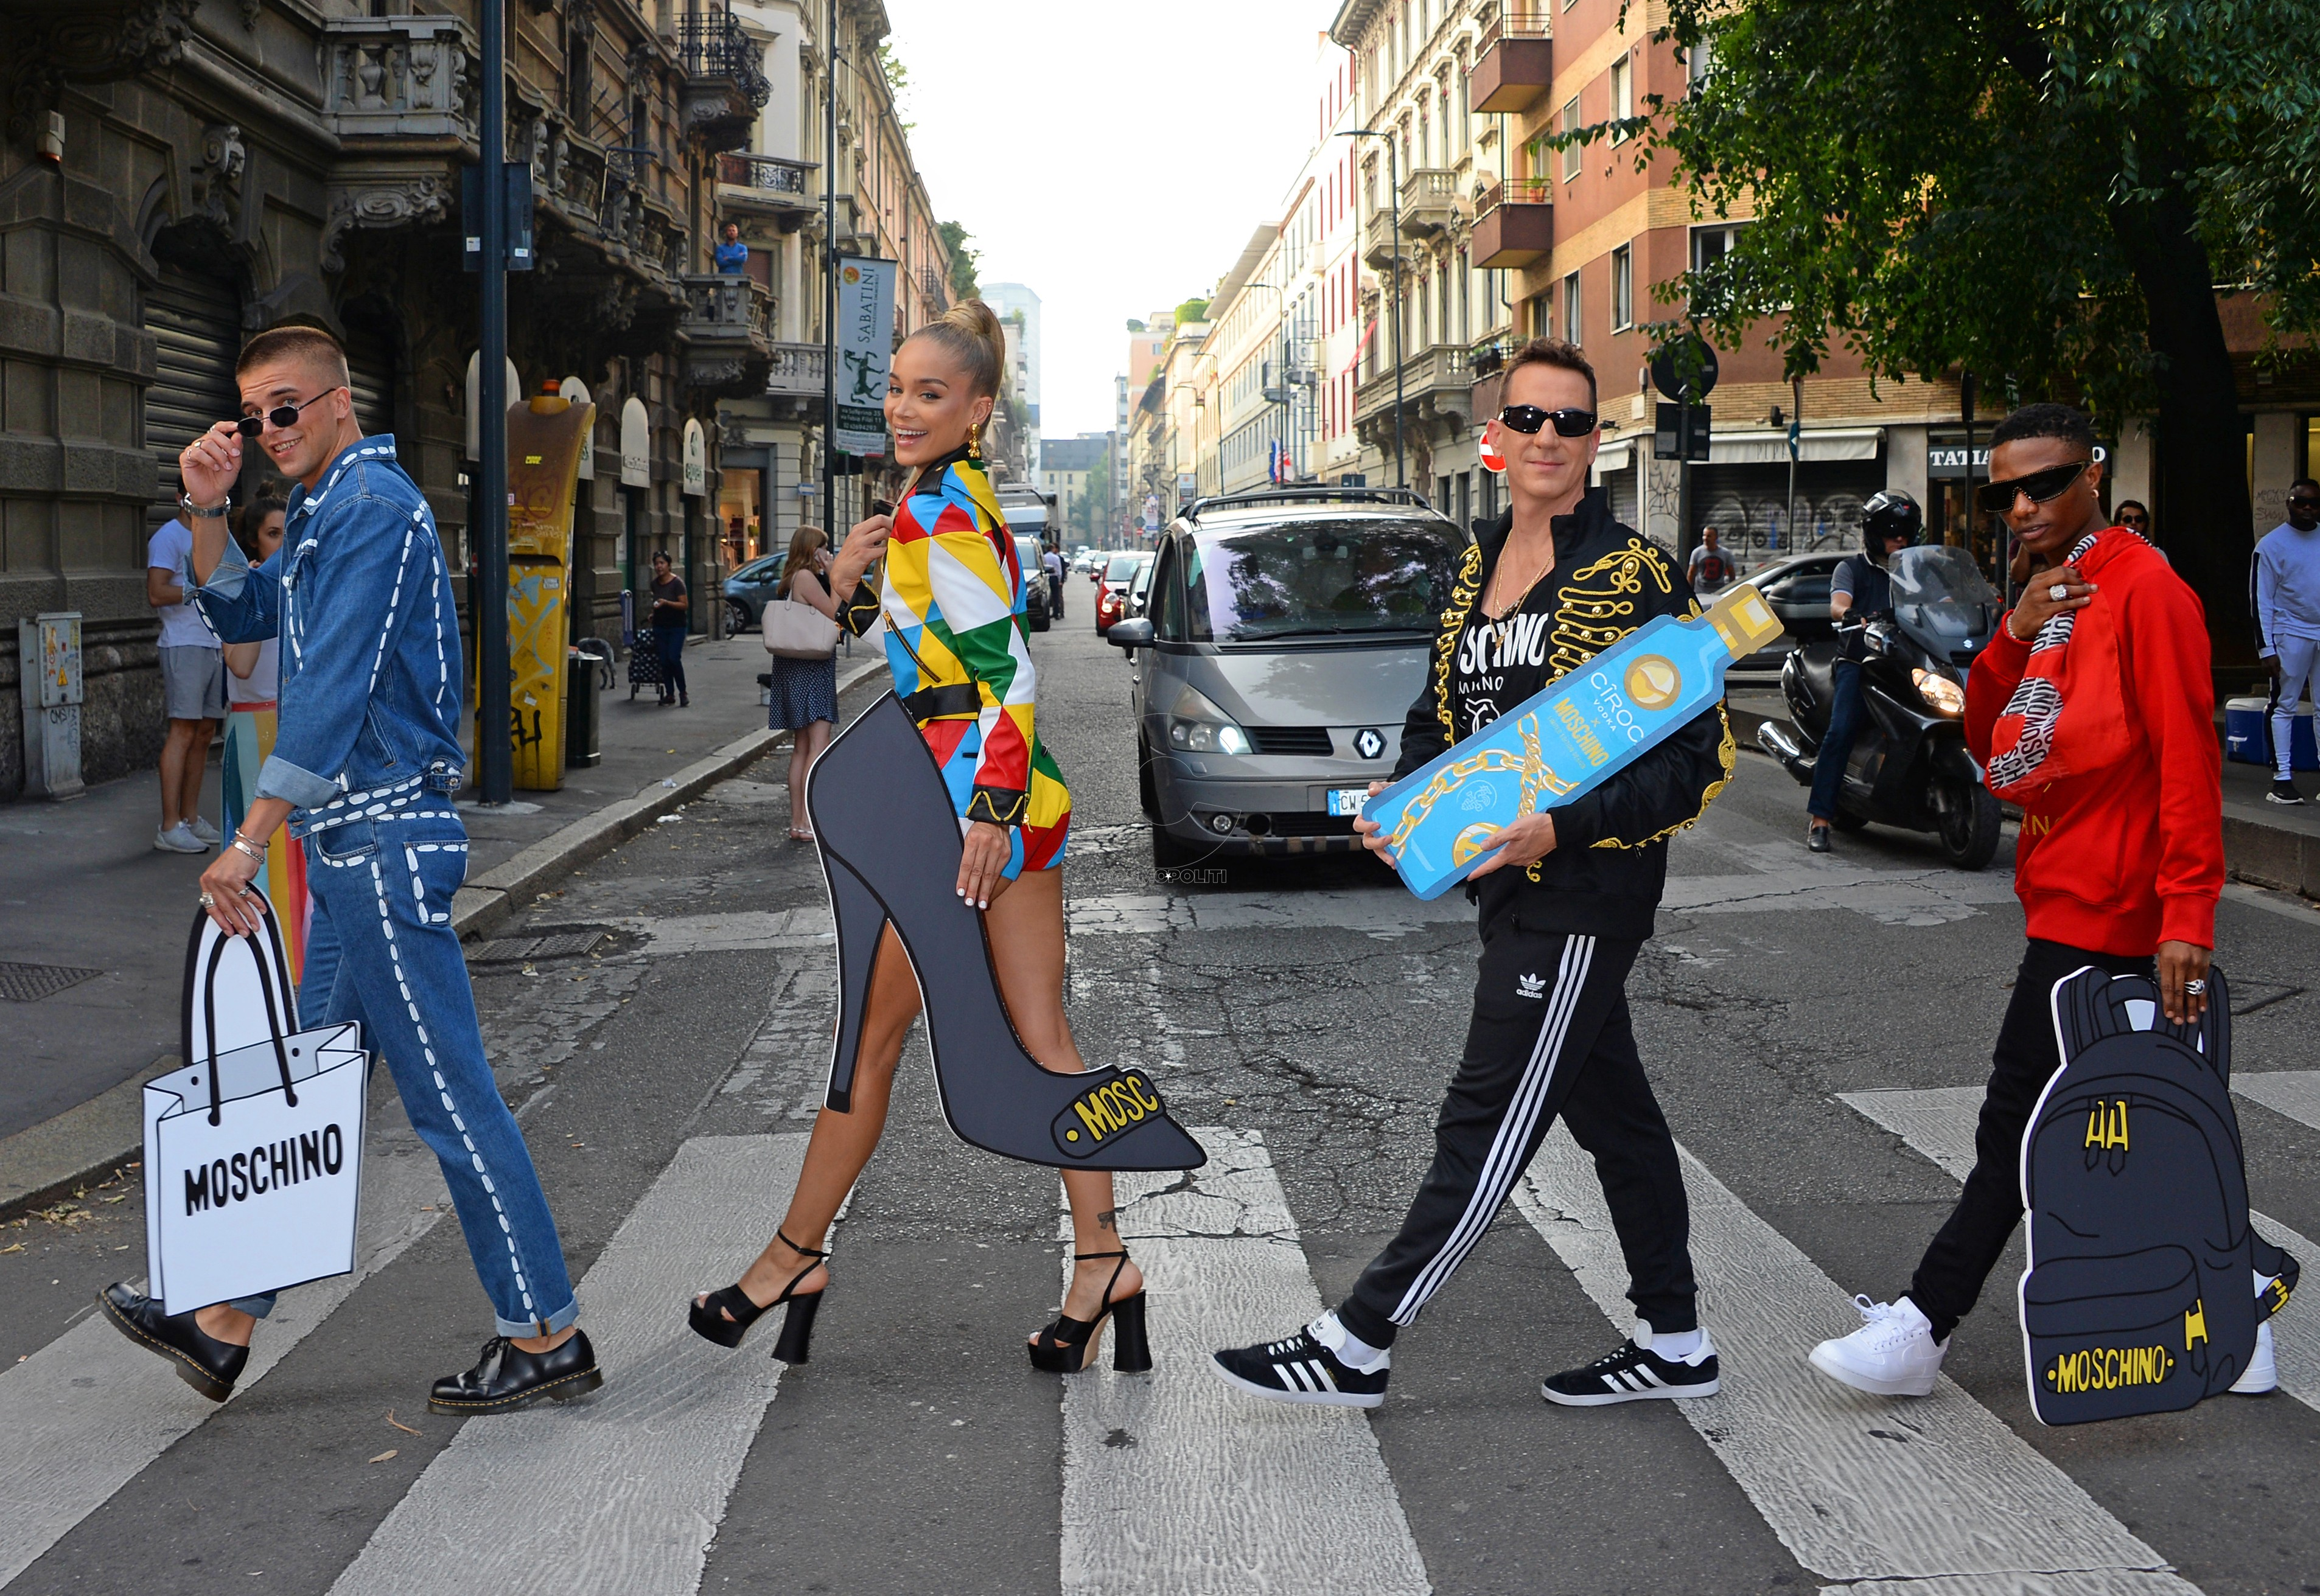 MILAN, ITALY - SEPTEMBER 19: (L to R) River Viiperi, Jasmine Sanders aka Golden Barbie, Jeremy Scott and WizKid stop traffic launching the CIROC x Moschino collaboration during Milan Fashion Week in the centre of Milan. CIROC luxury vodka has partnered with Italian fashion house Moschino, bringing together fashion's most playful brands. Pi Credit: Dave Benett